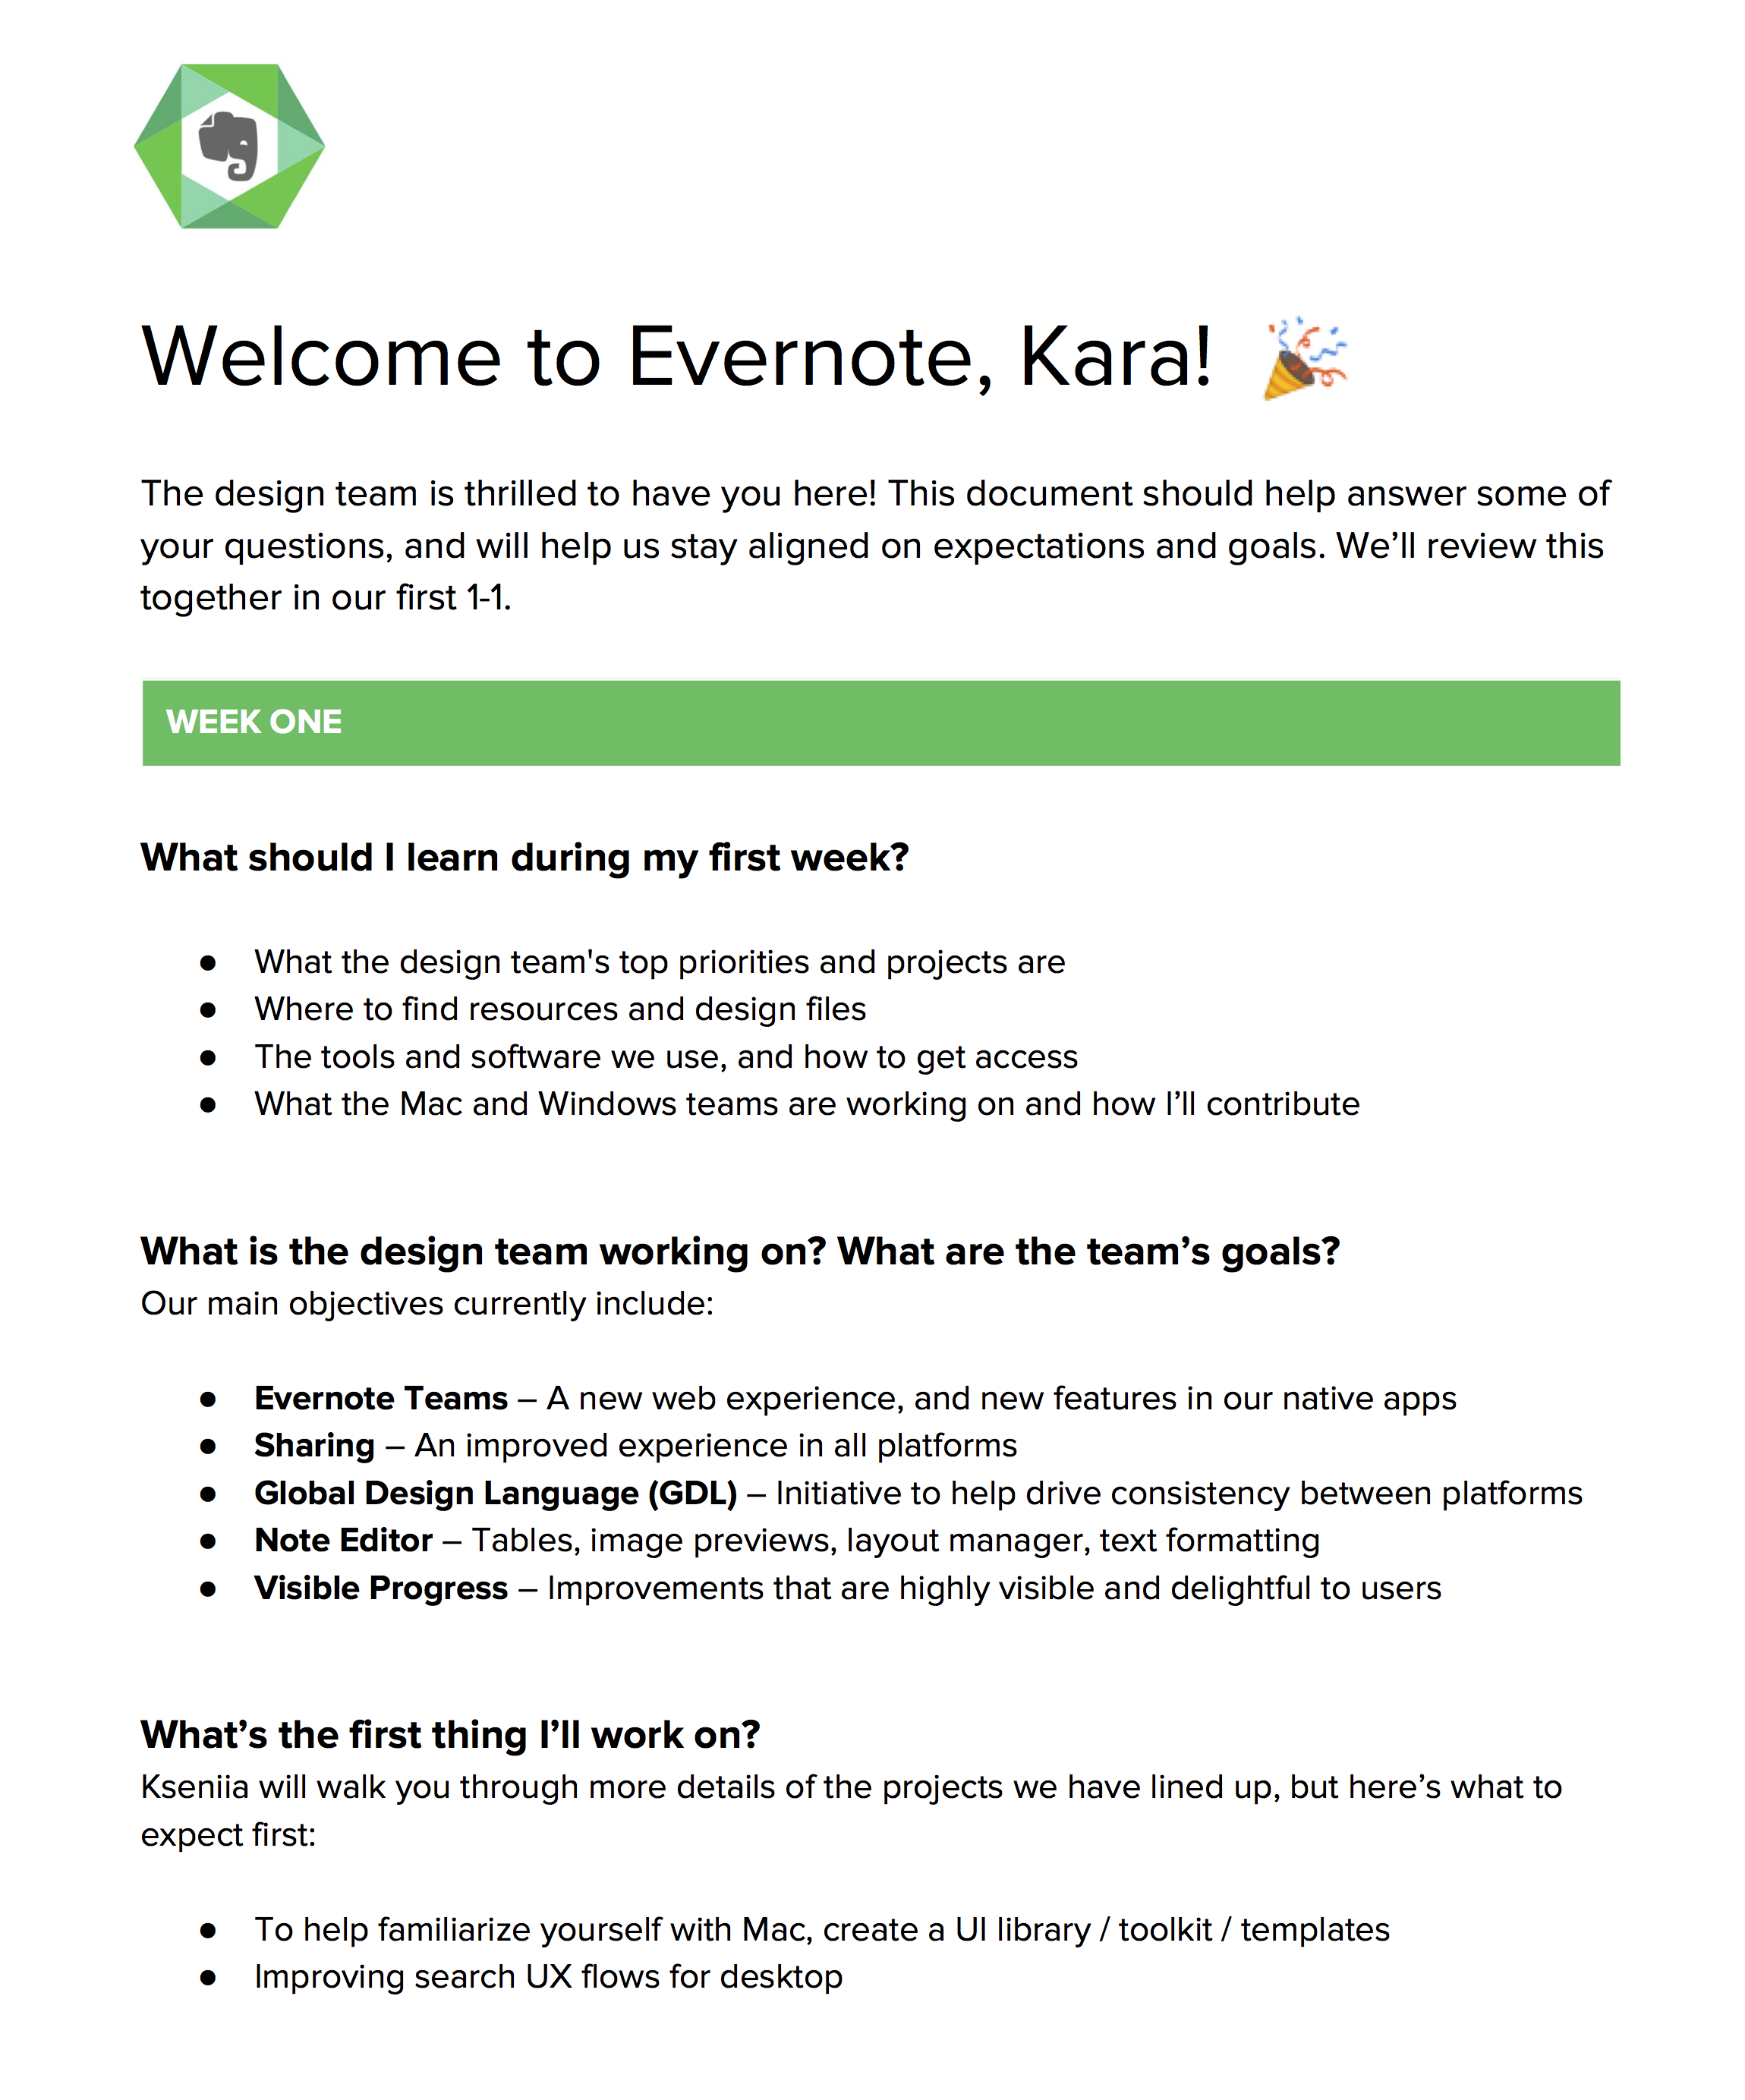 One page from the new designer welcome kit